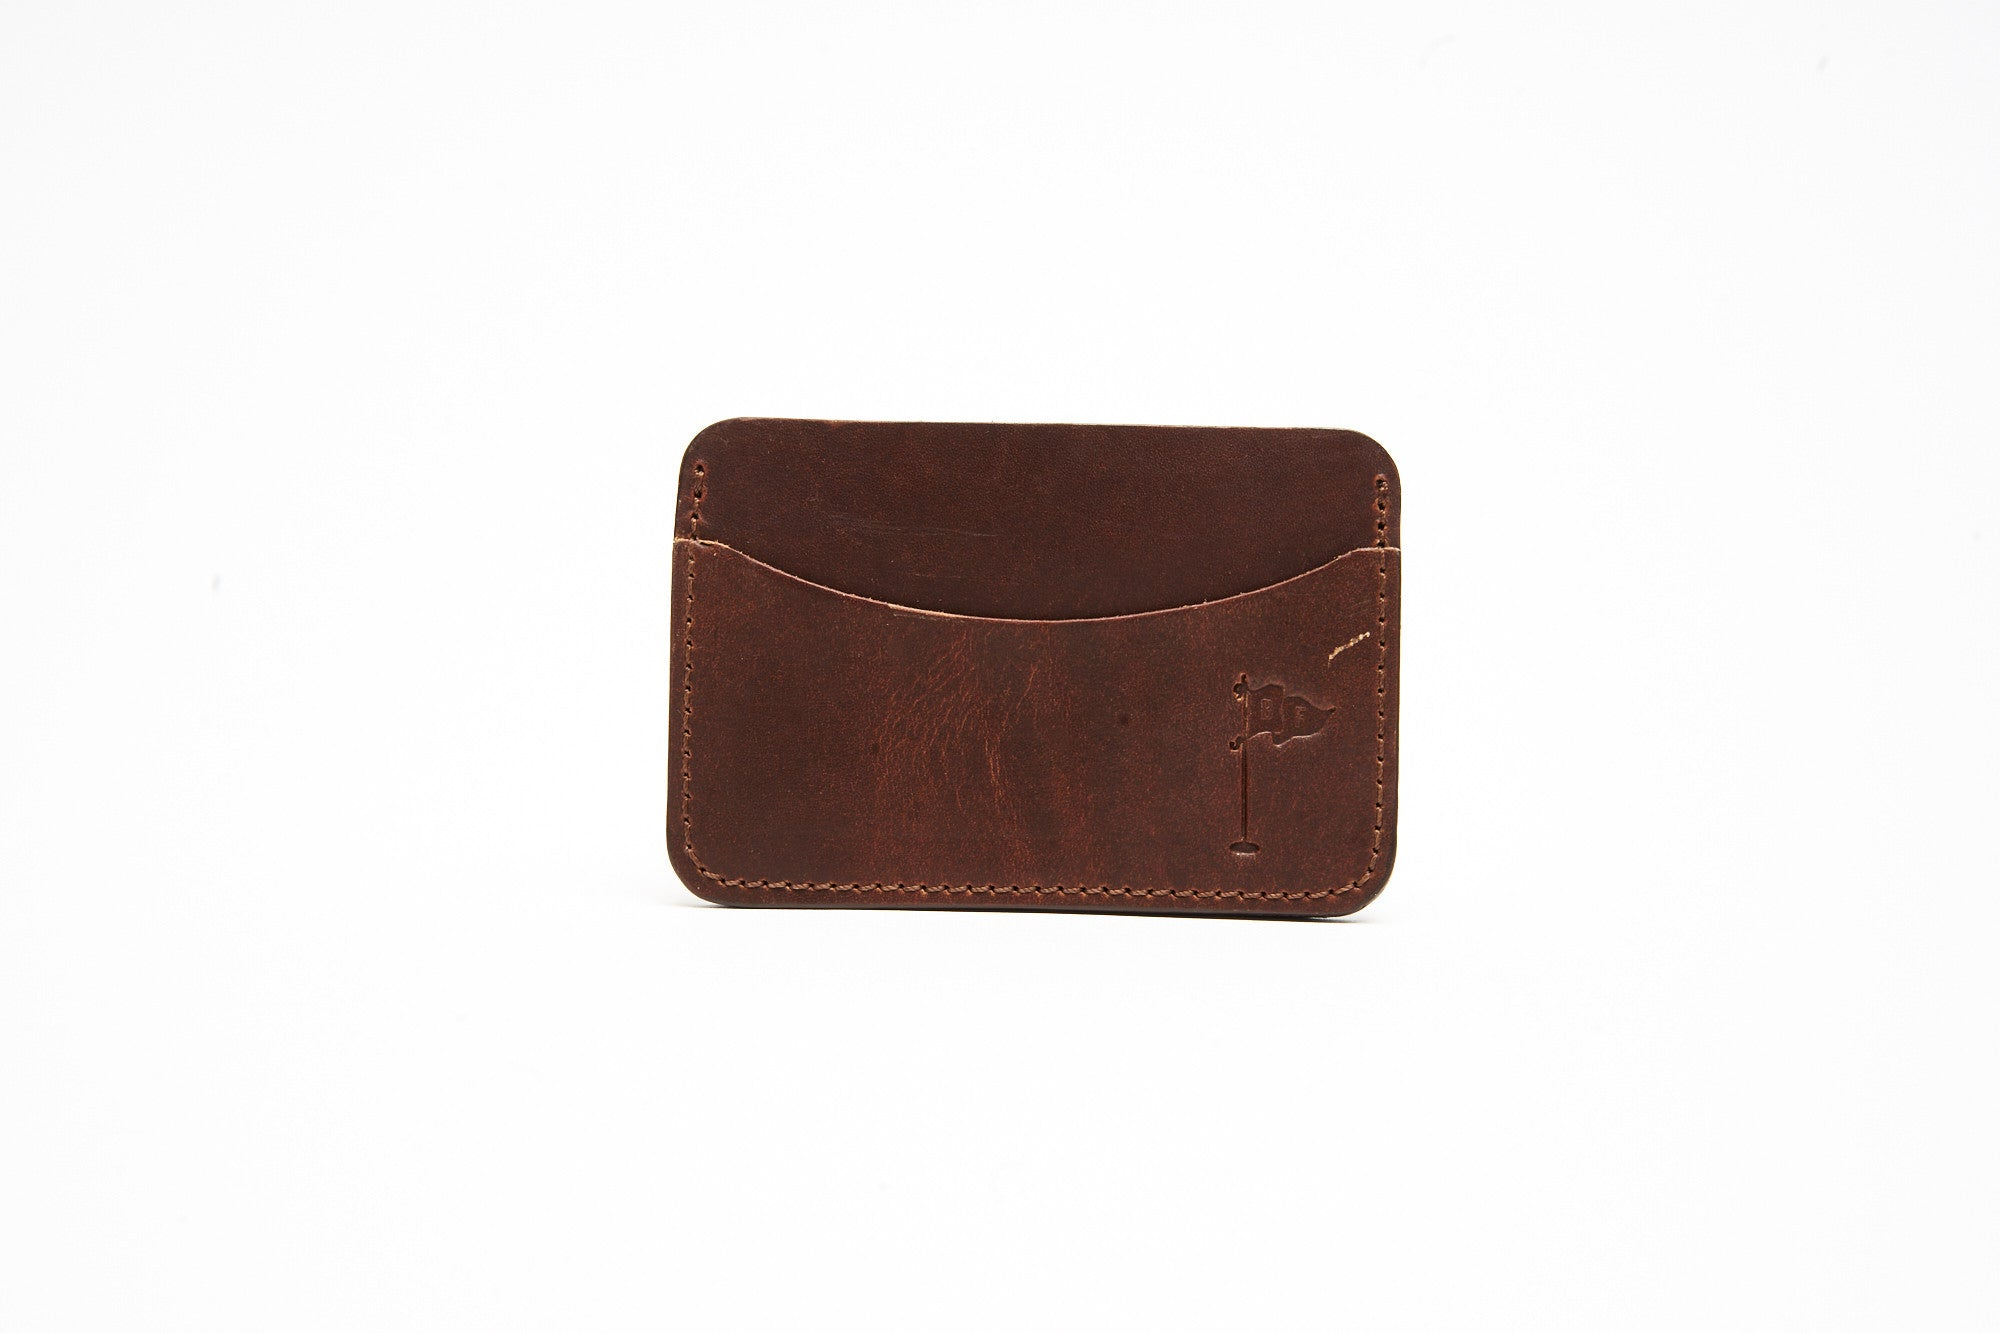 Raynor Slim Wallet